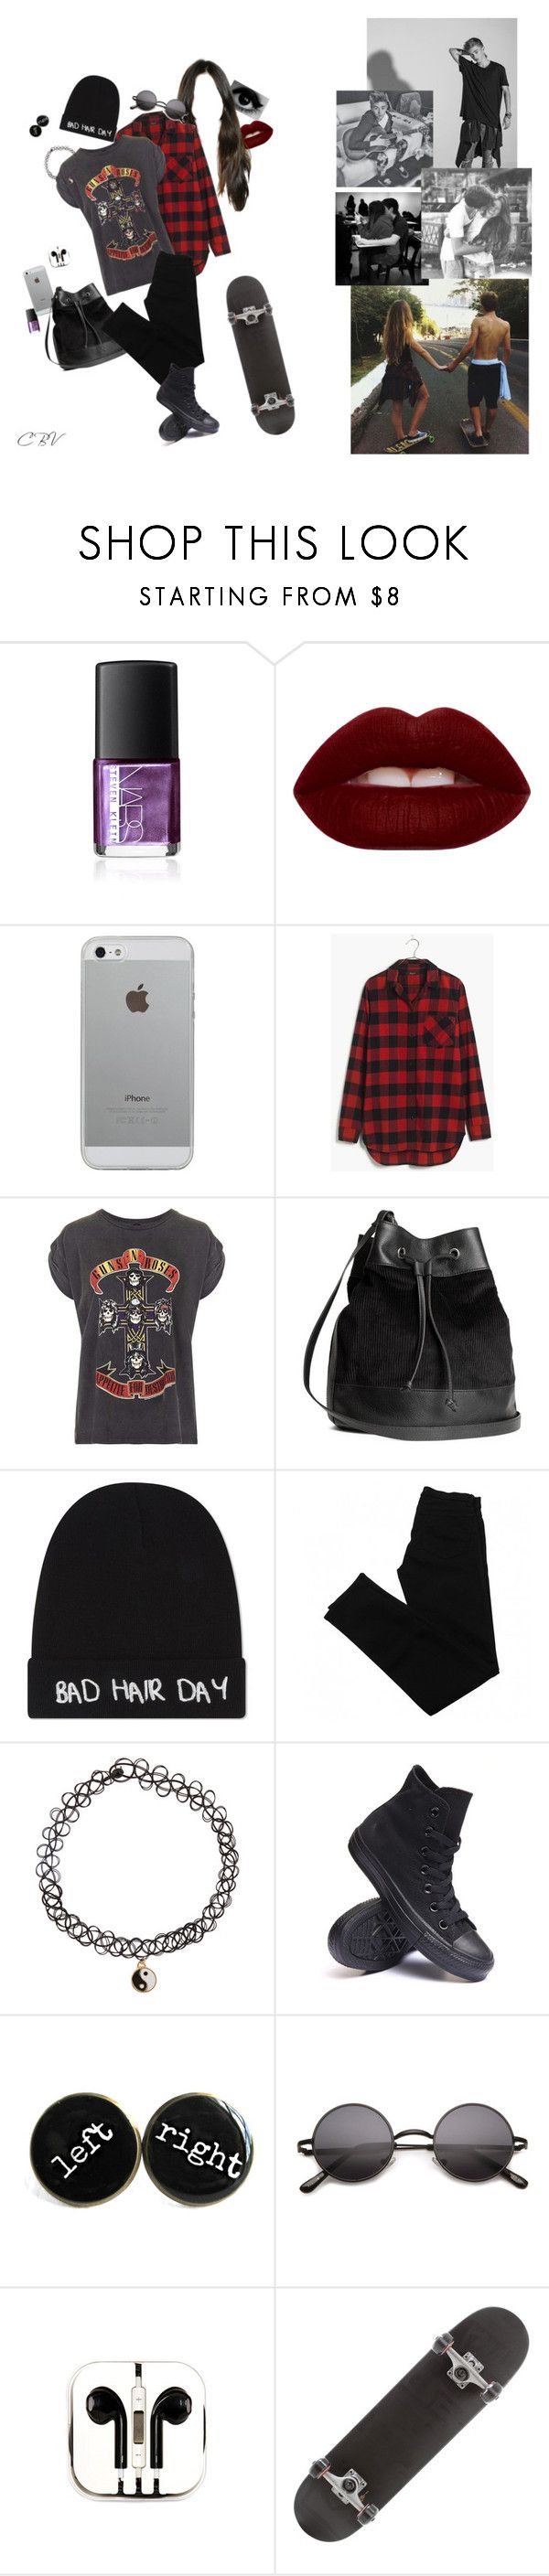 """day with johnson"" by crazybyvans ❤ liked on Polyvore featuring NARS Cosmetics, Lime Crime, Luvvitt, Madewell, And Finally, H&M, Local Heroes, J Brand, Accessorize and Converse"